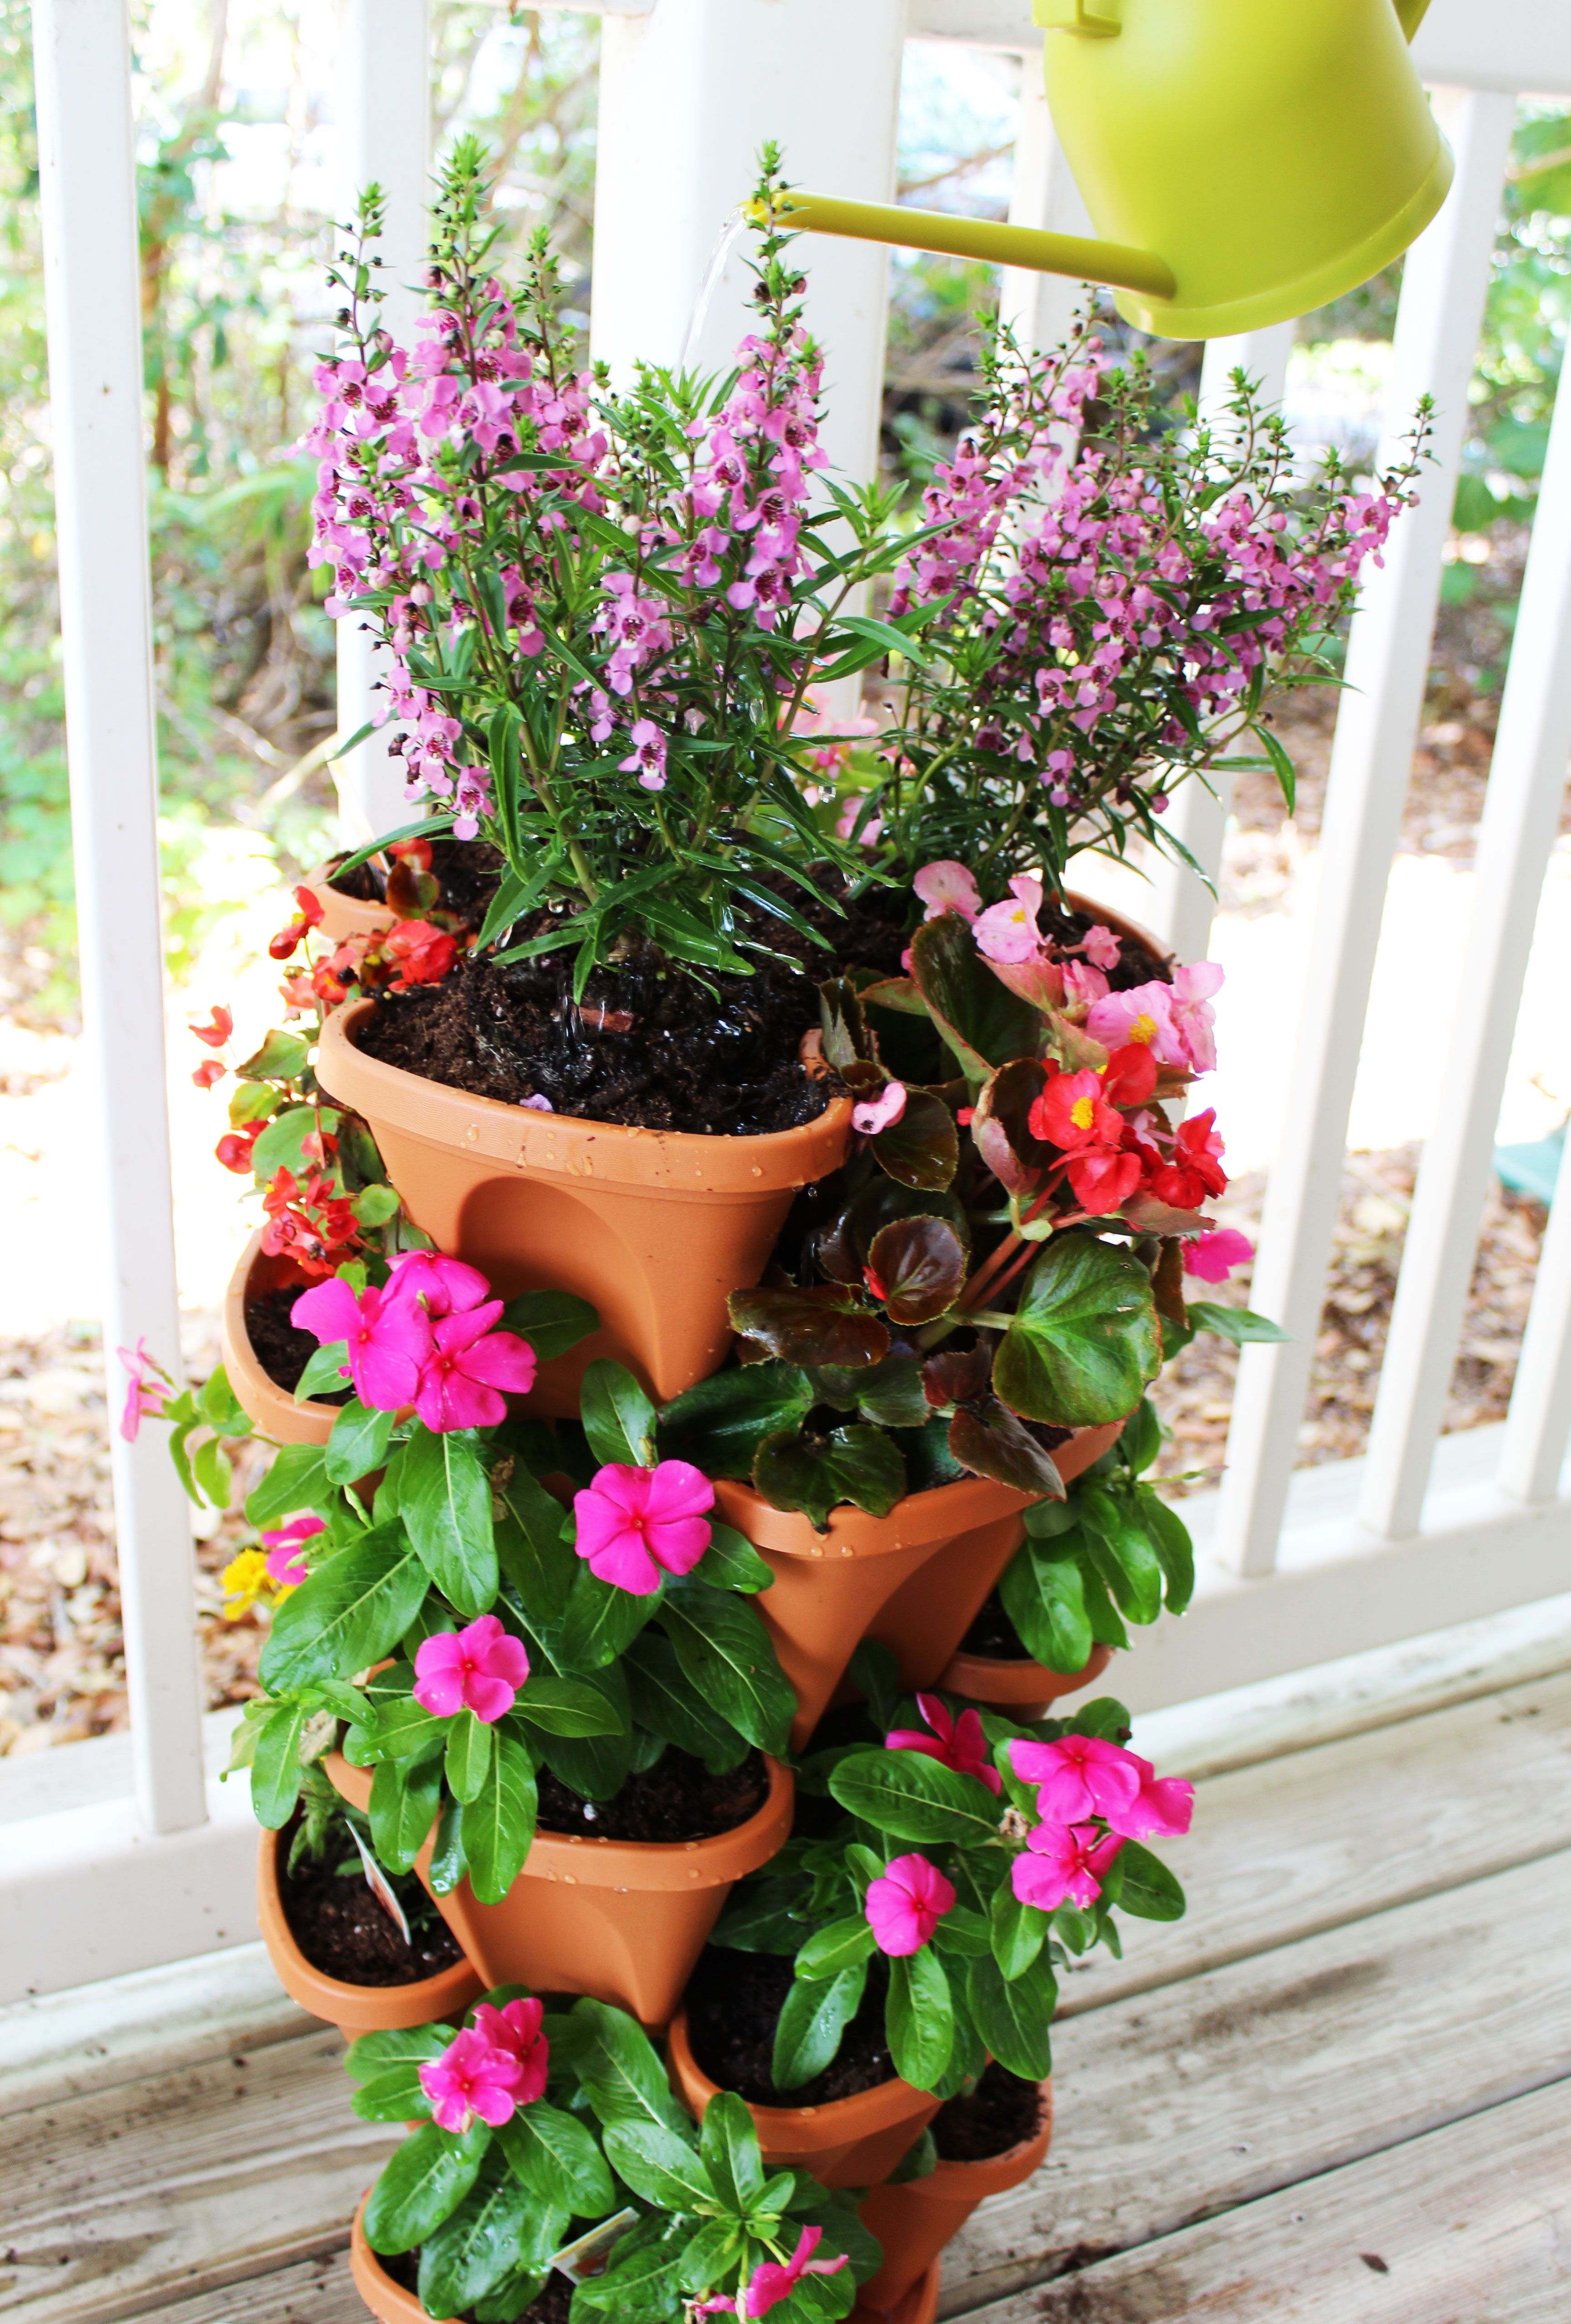 5 Tier Planter Create Beautiful Flower Displays Our Stacking